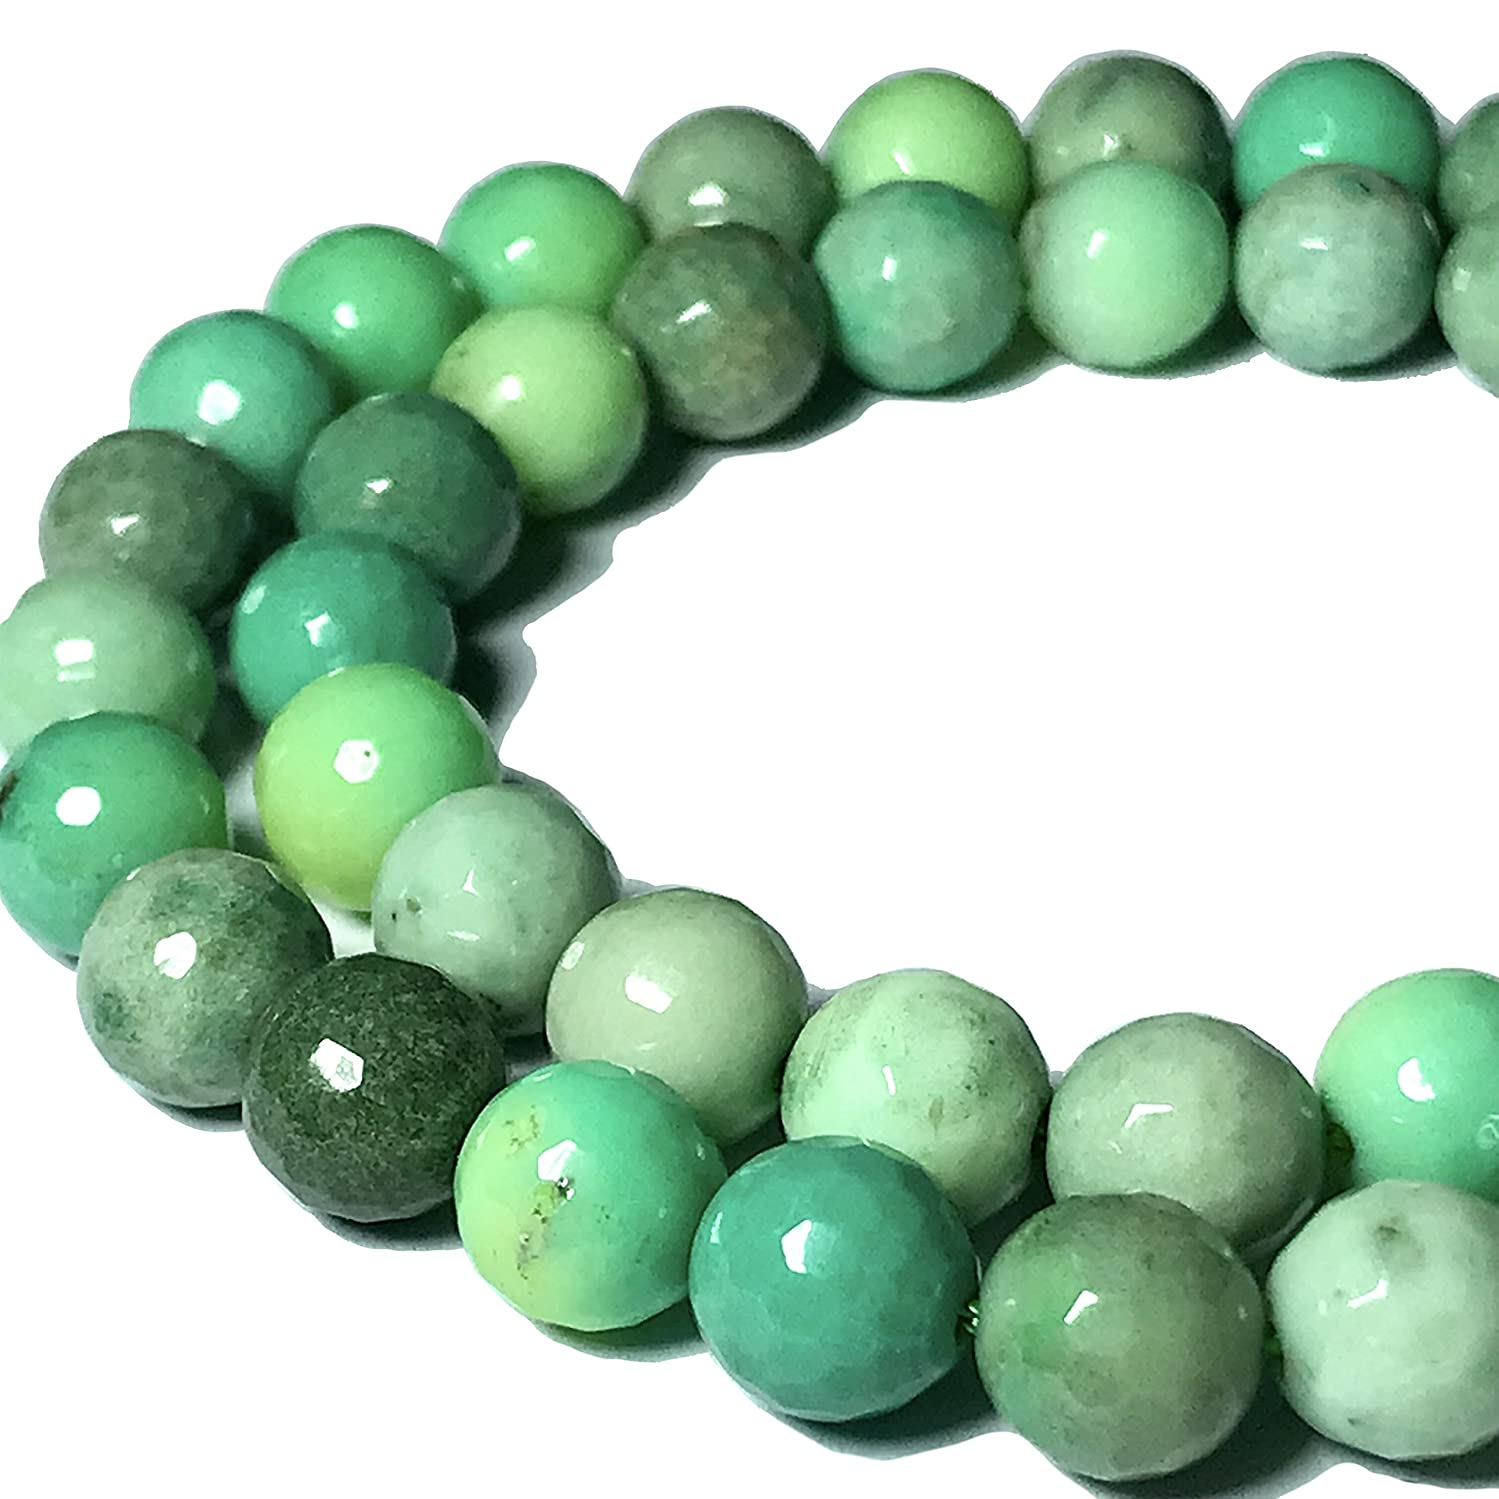 [ABCgems] Rare Australian Chrysoprase (Exquisite Color) 14mm Faceted Round Beads for Beading & Jewelry Making